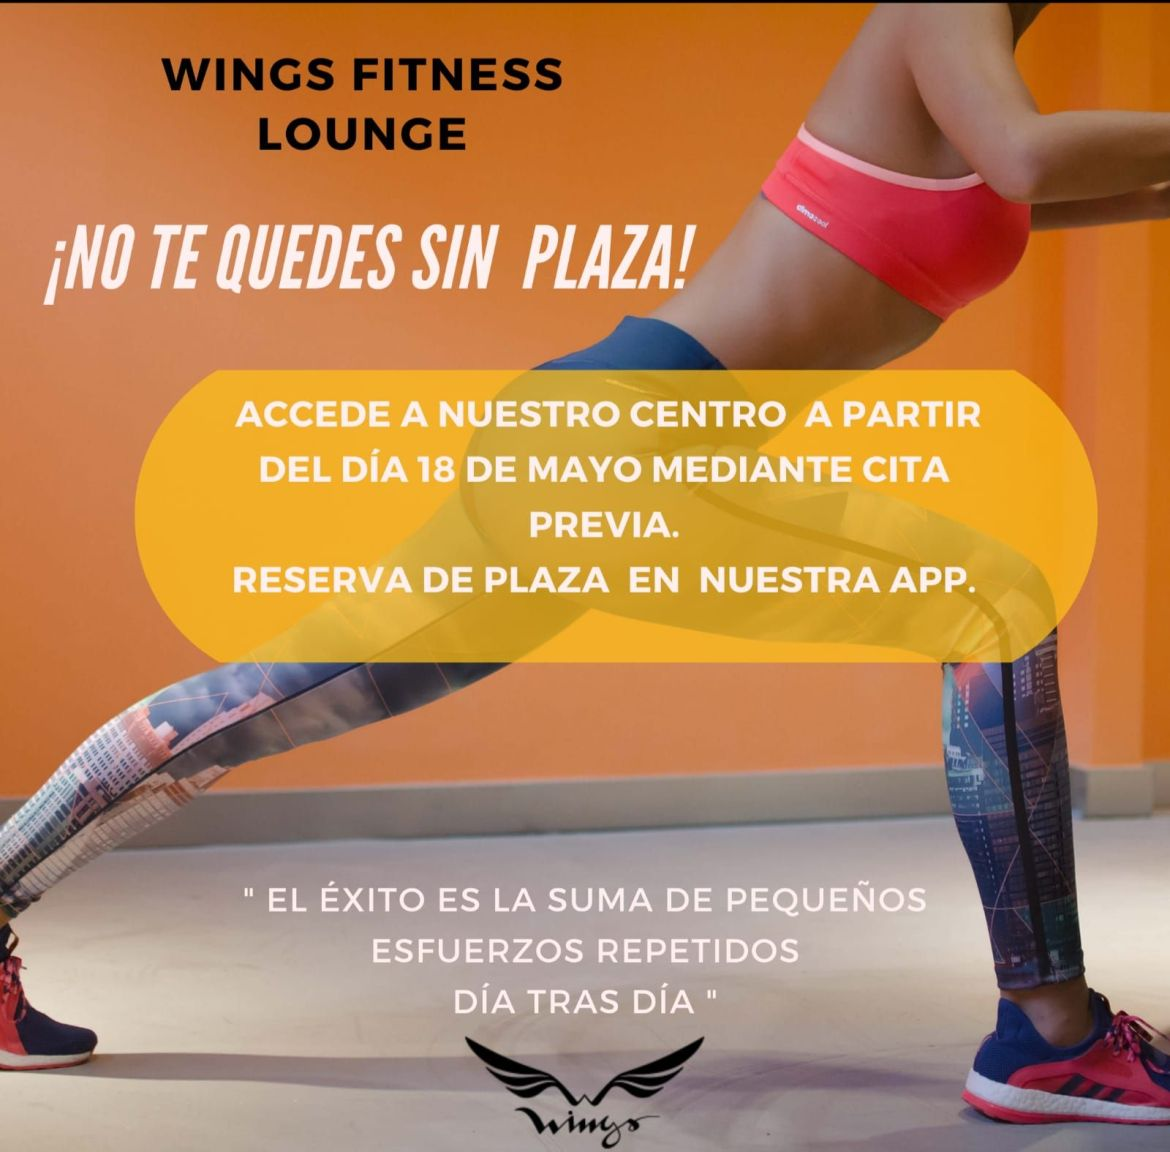 Reserva plaza - WingsFitness Lounge